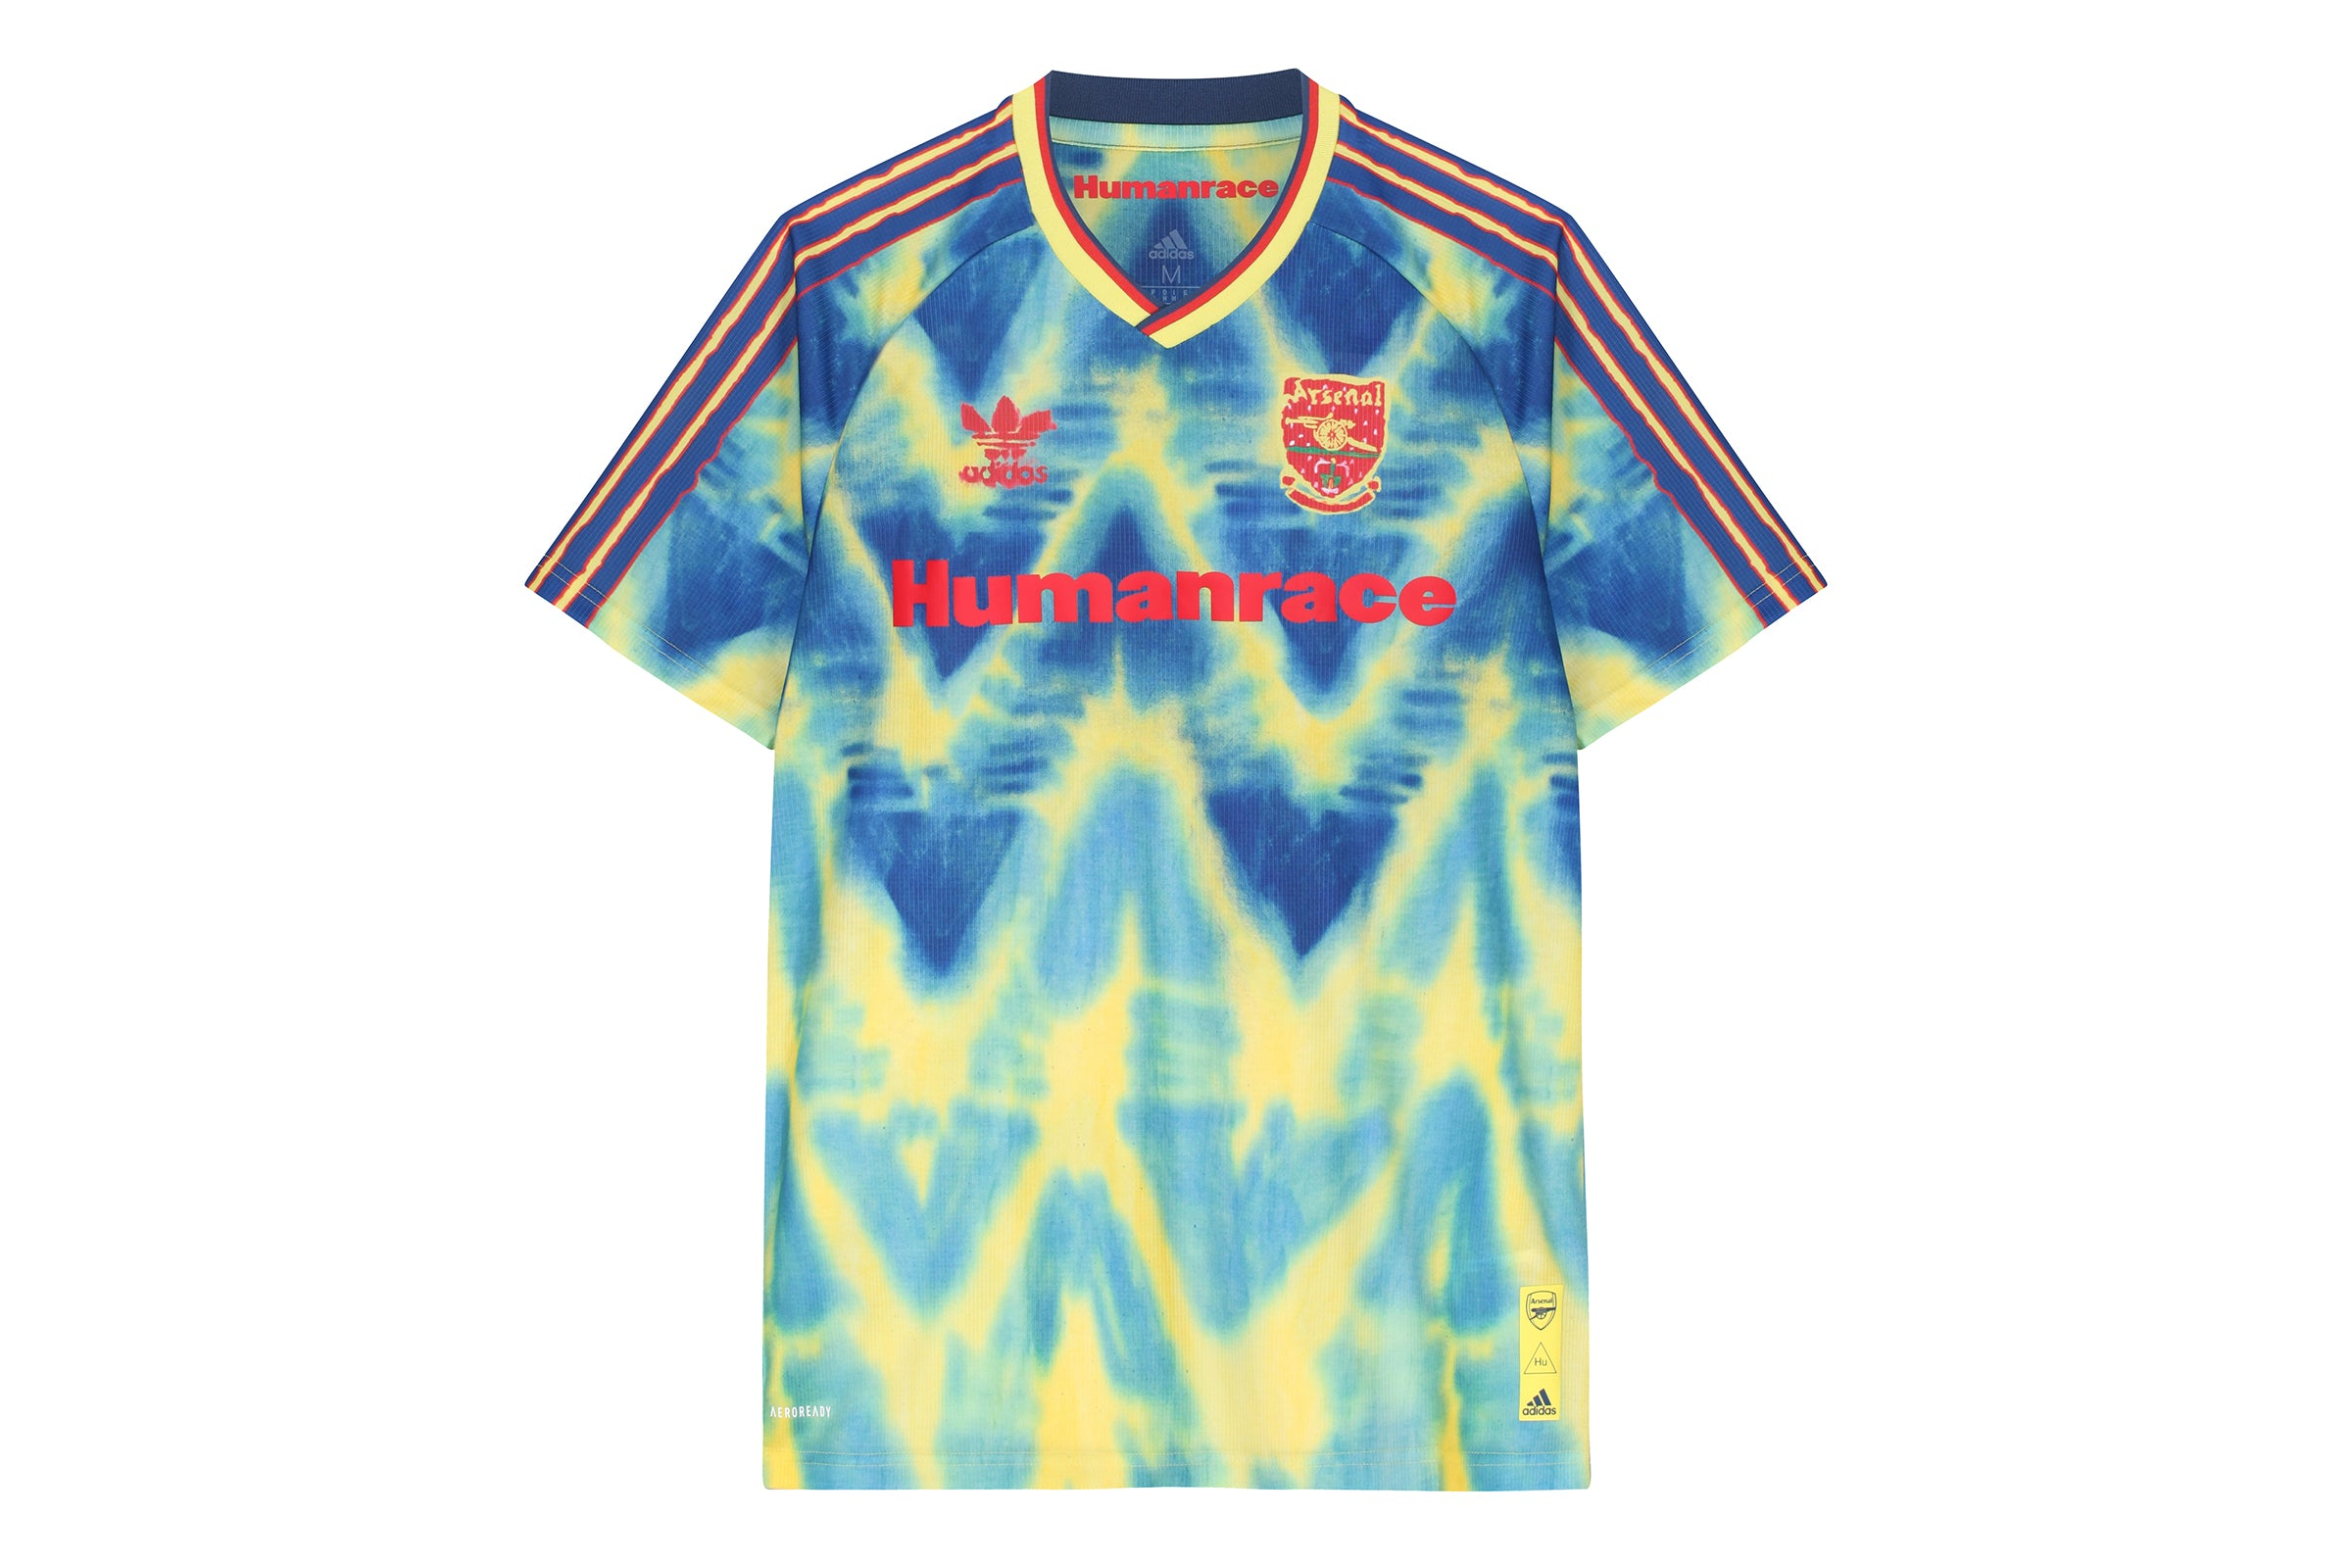 Adidas Arsenal Human Race Jersey x Pharrell Williams